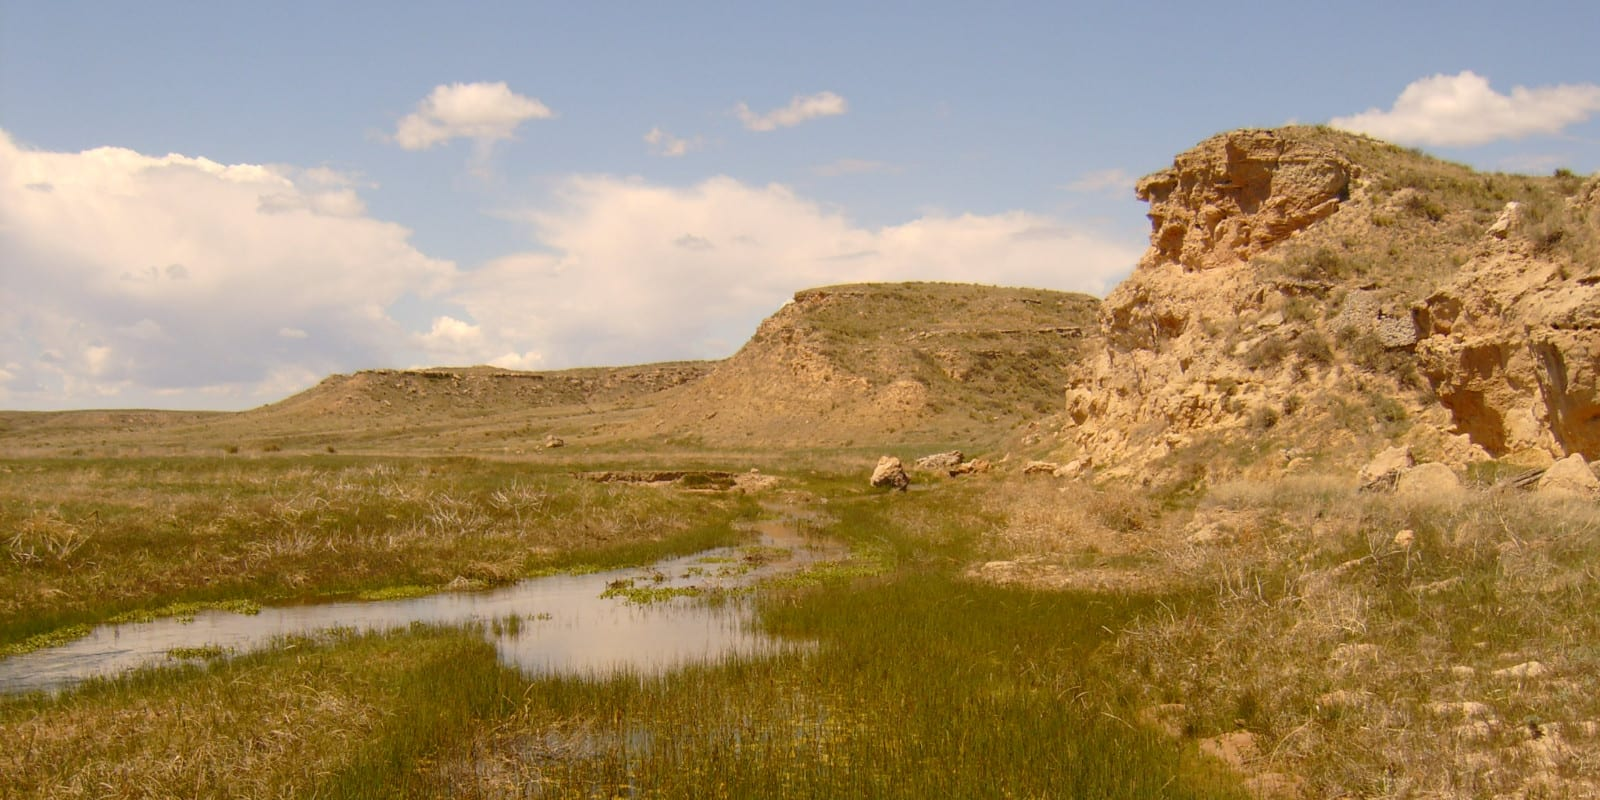 Image of the Arikaree River in the great plains